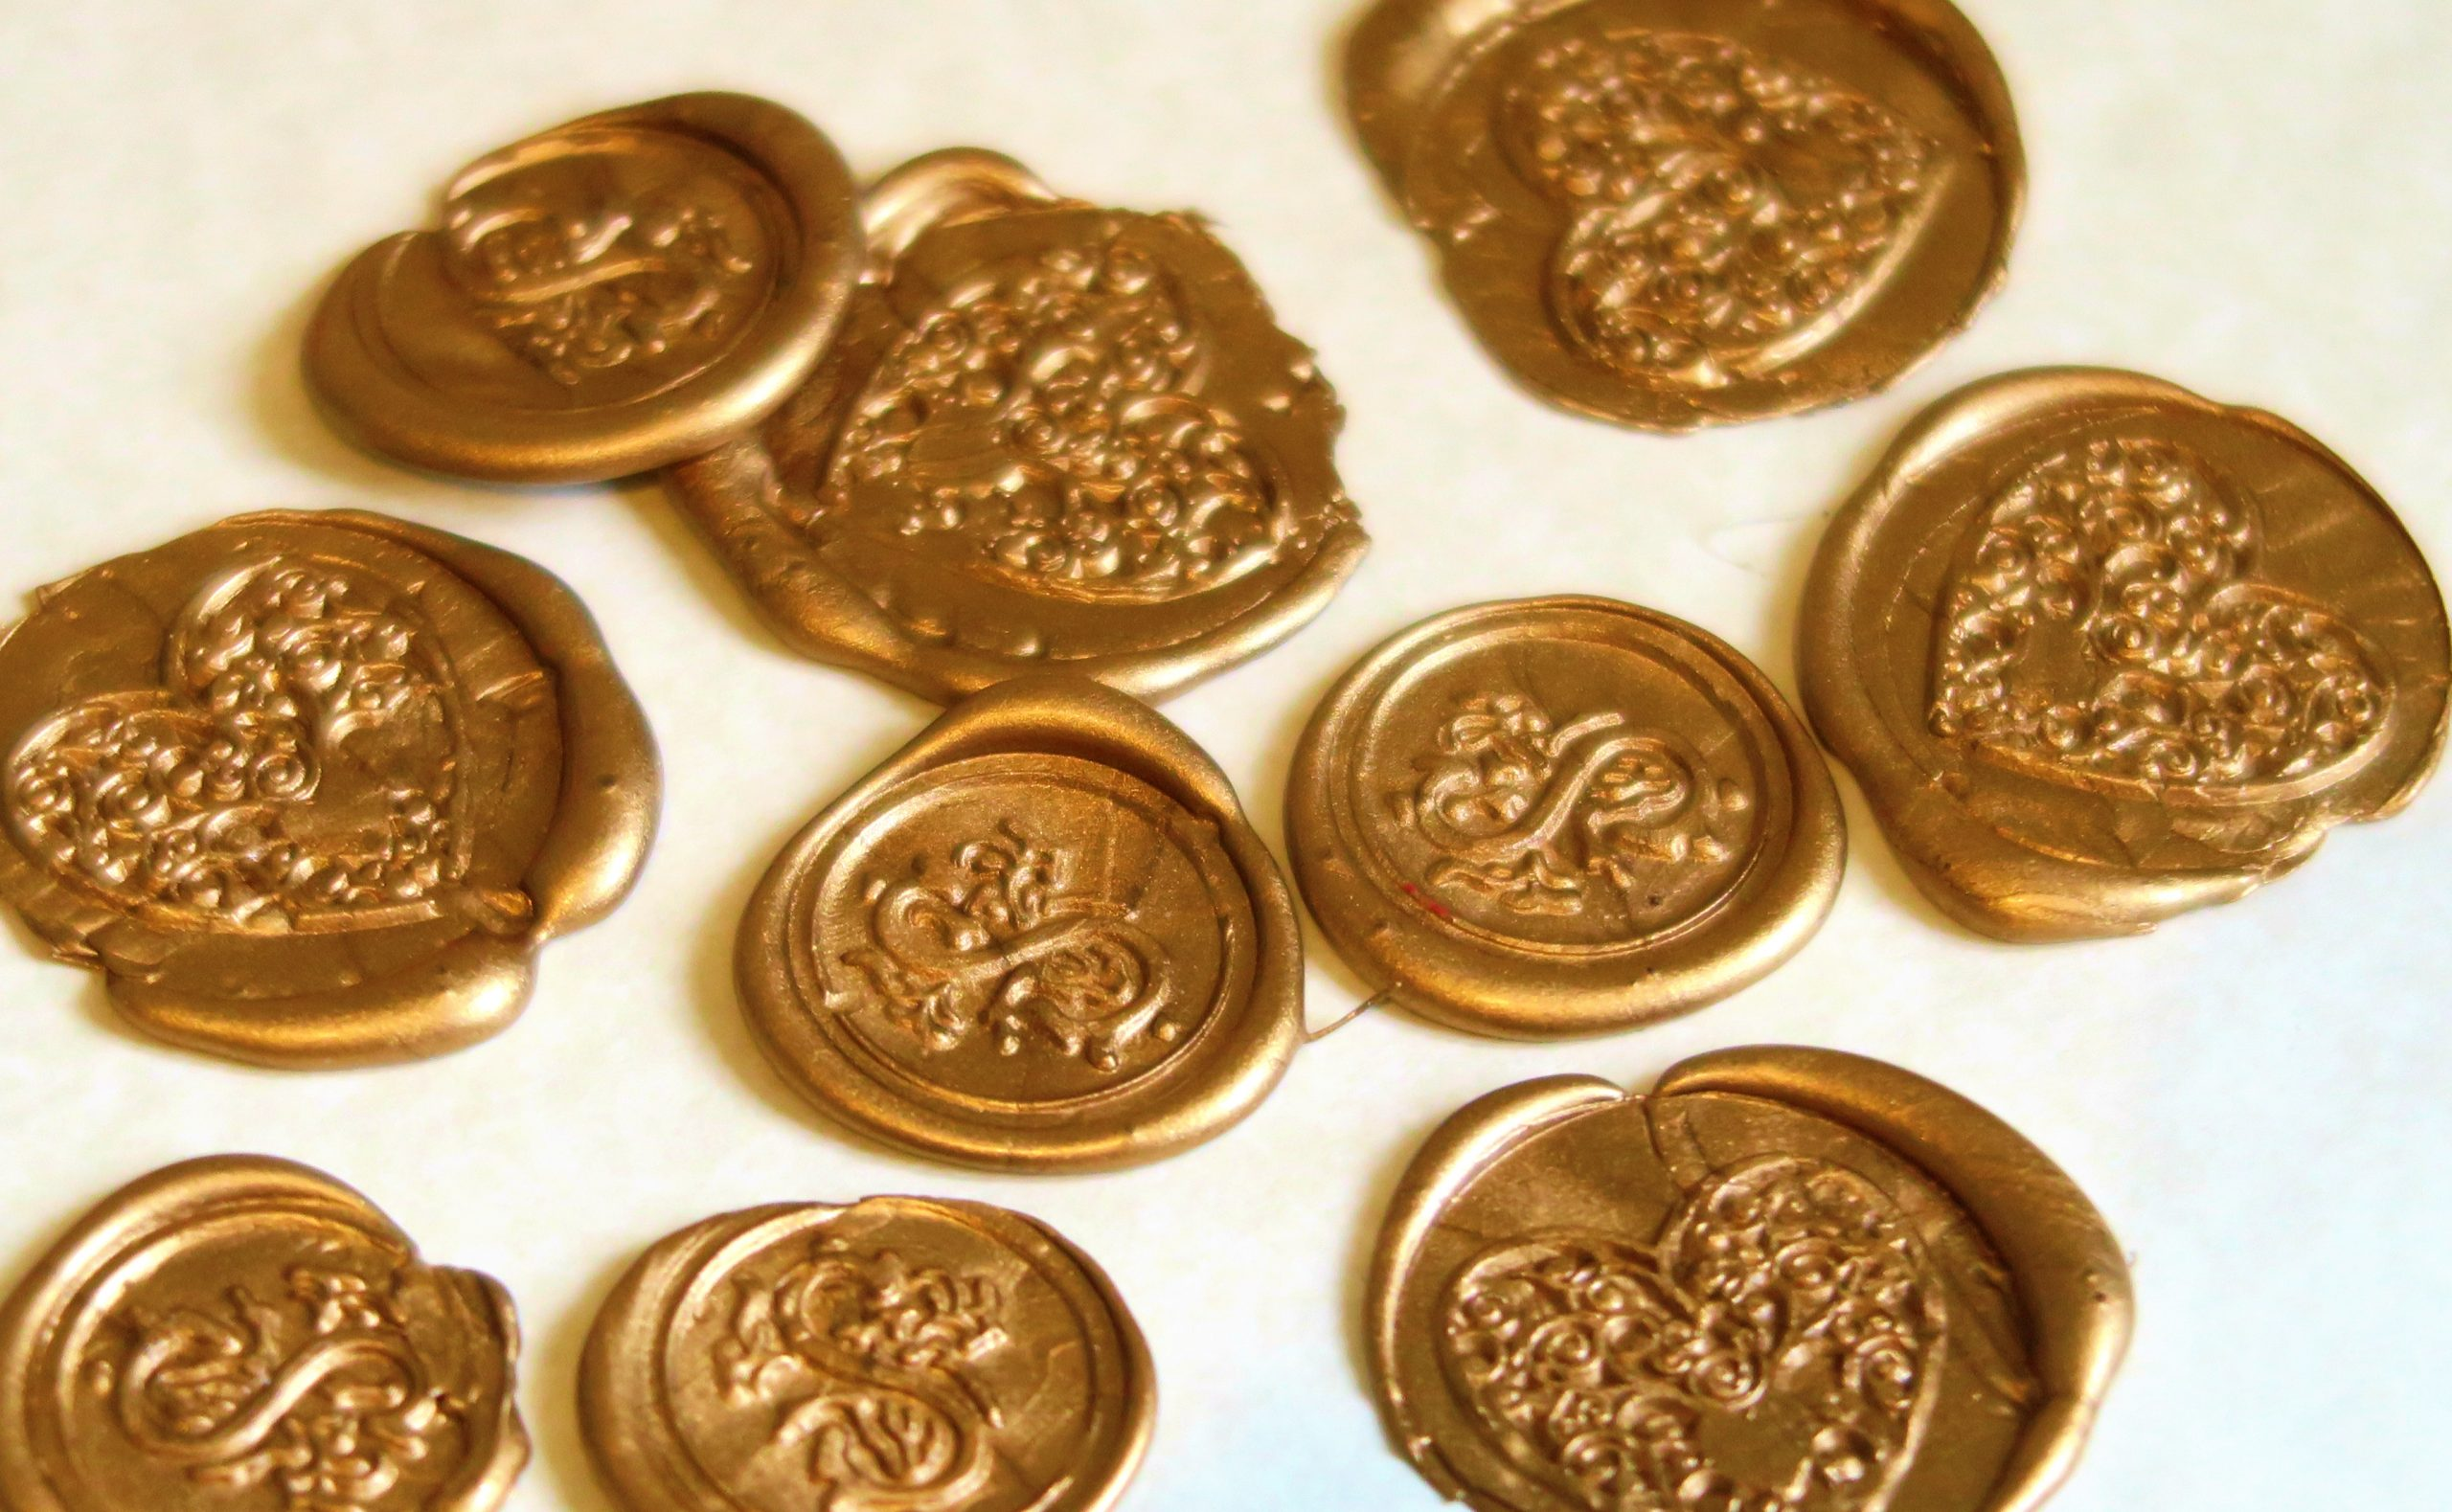 Gold wax seals